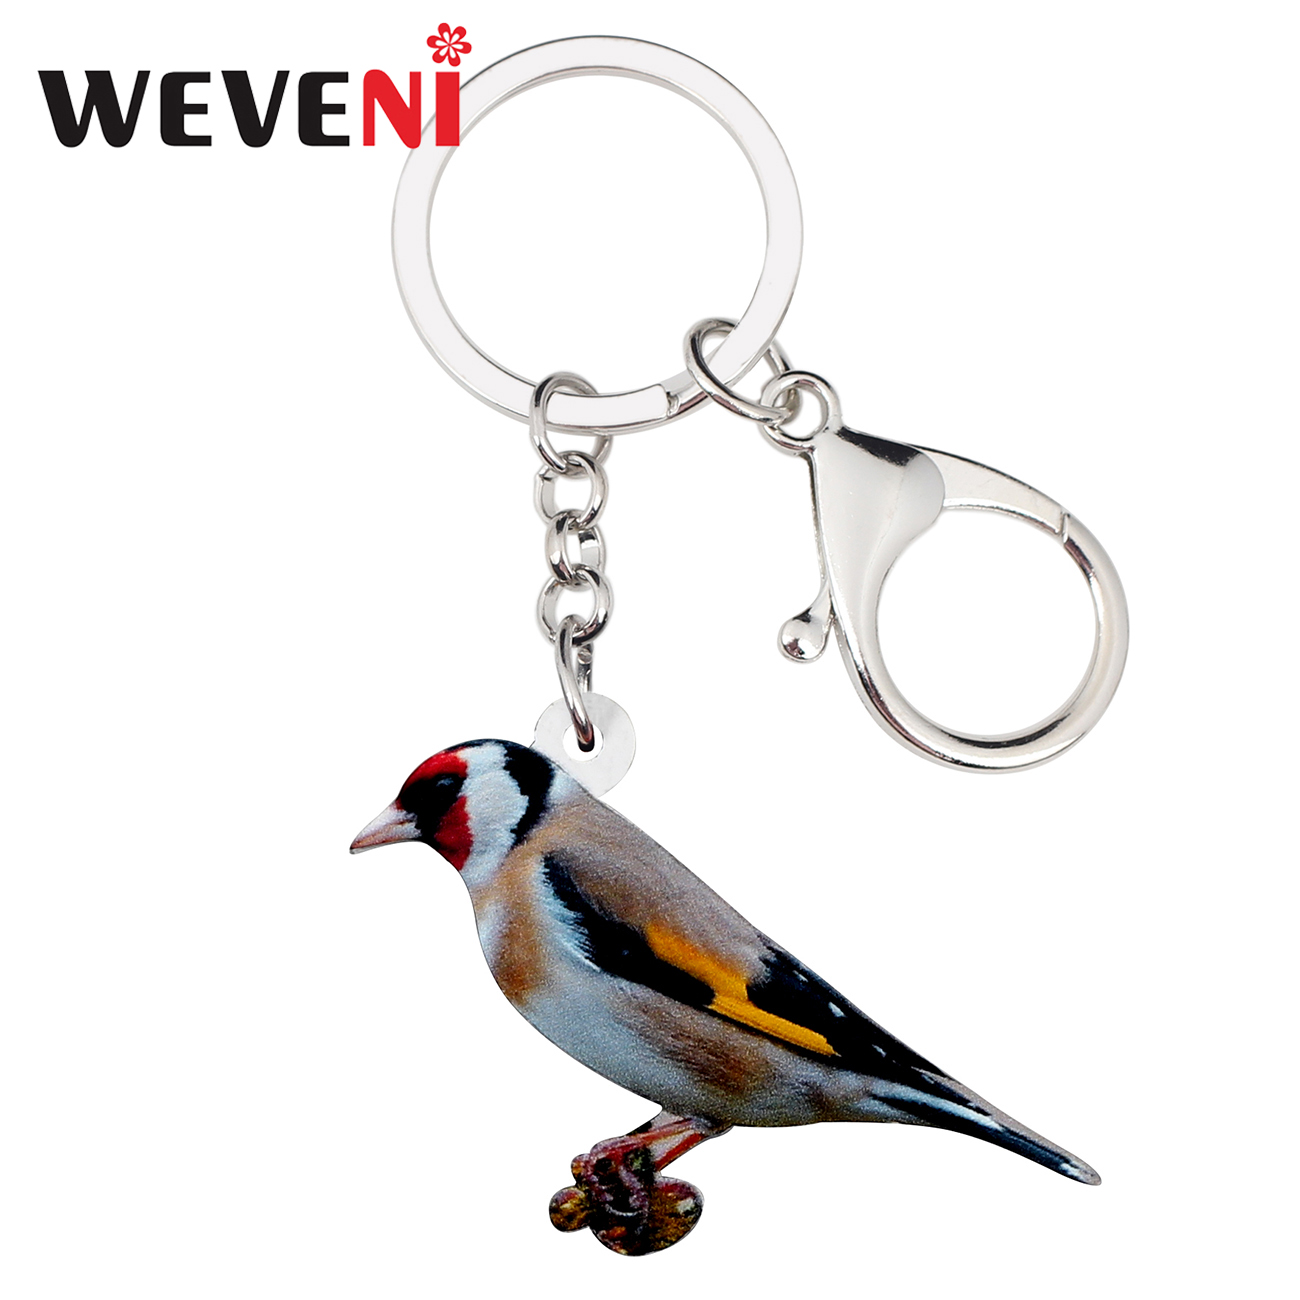 WEVENI Acrylic European Goldfinch Bird Key Chains Holder Ring Fashion Jewelry For Women Girl Car Bag Pendant Charms Keychain New